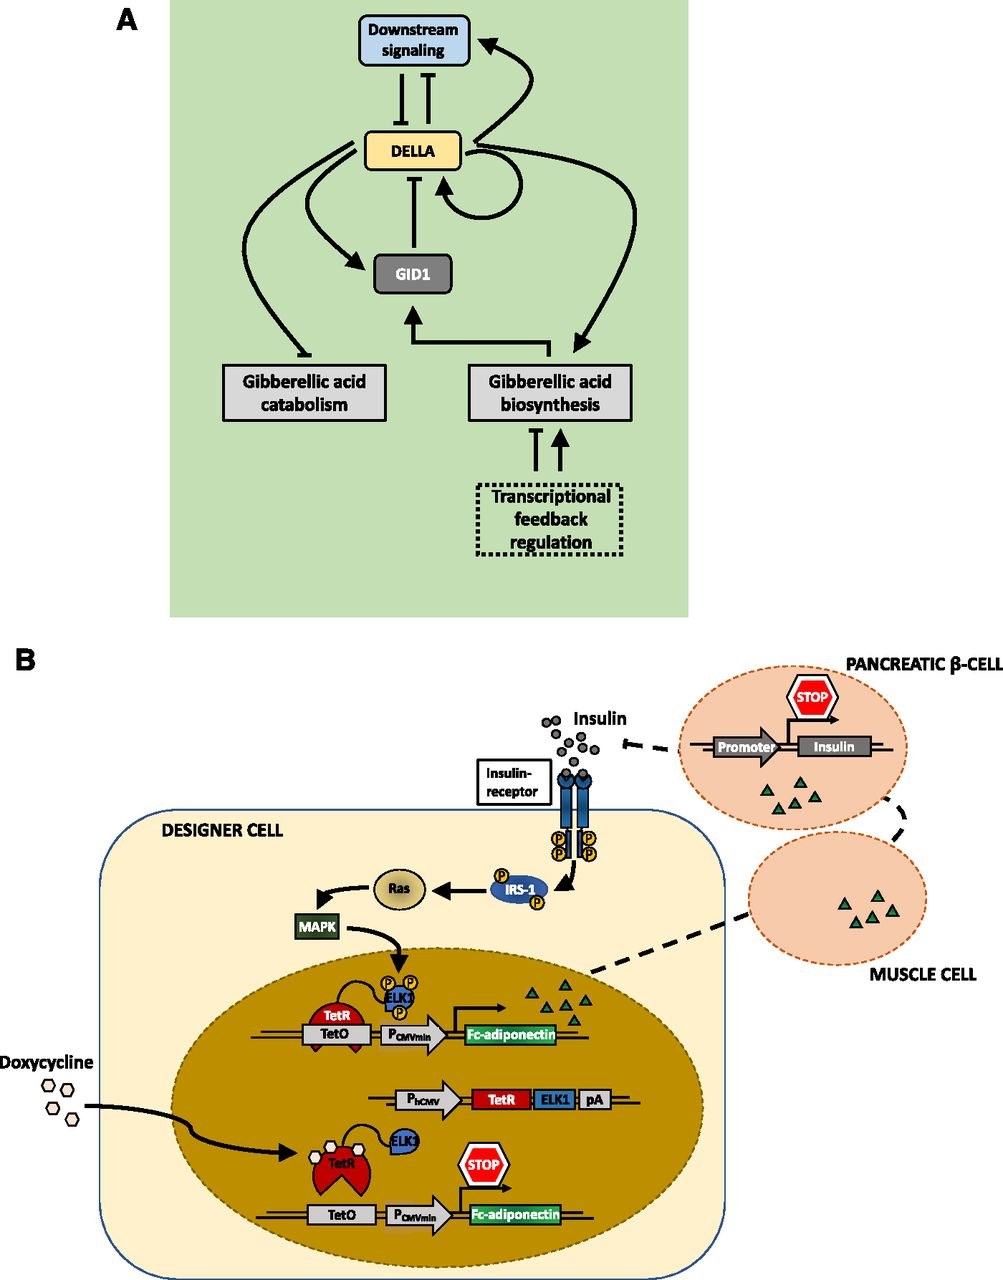 Stupendous Synthetic Switches And Regulatory Circuits In Plants Plant Physiology Wiring Cloud Rometaidewilluminateatxorg